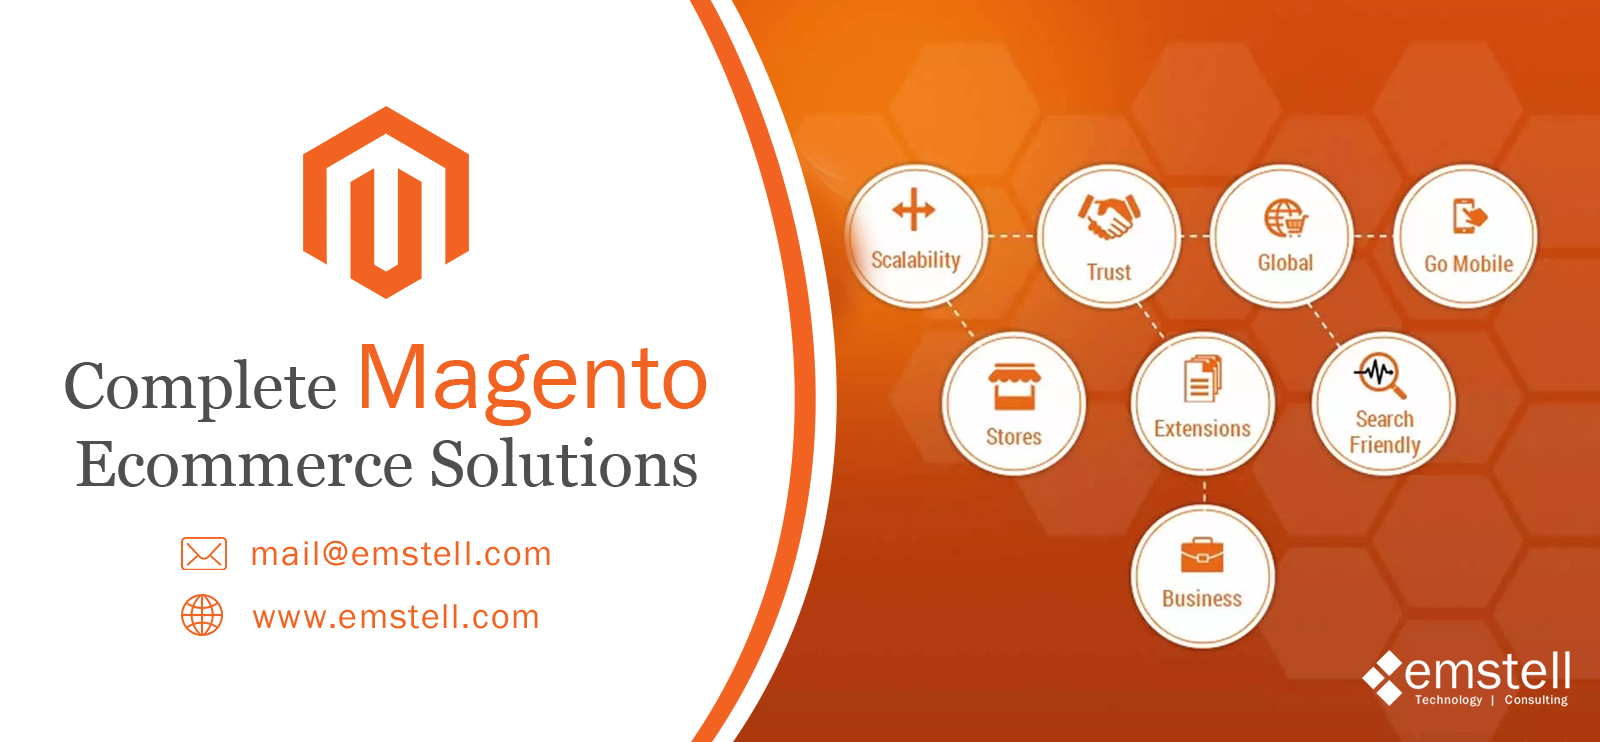 magento-ecommerce-kuwait-website-mobile-apps-emstell - Emstell